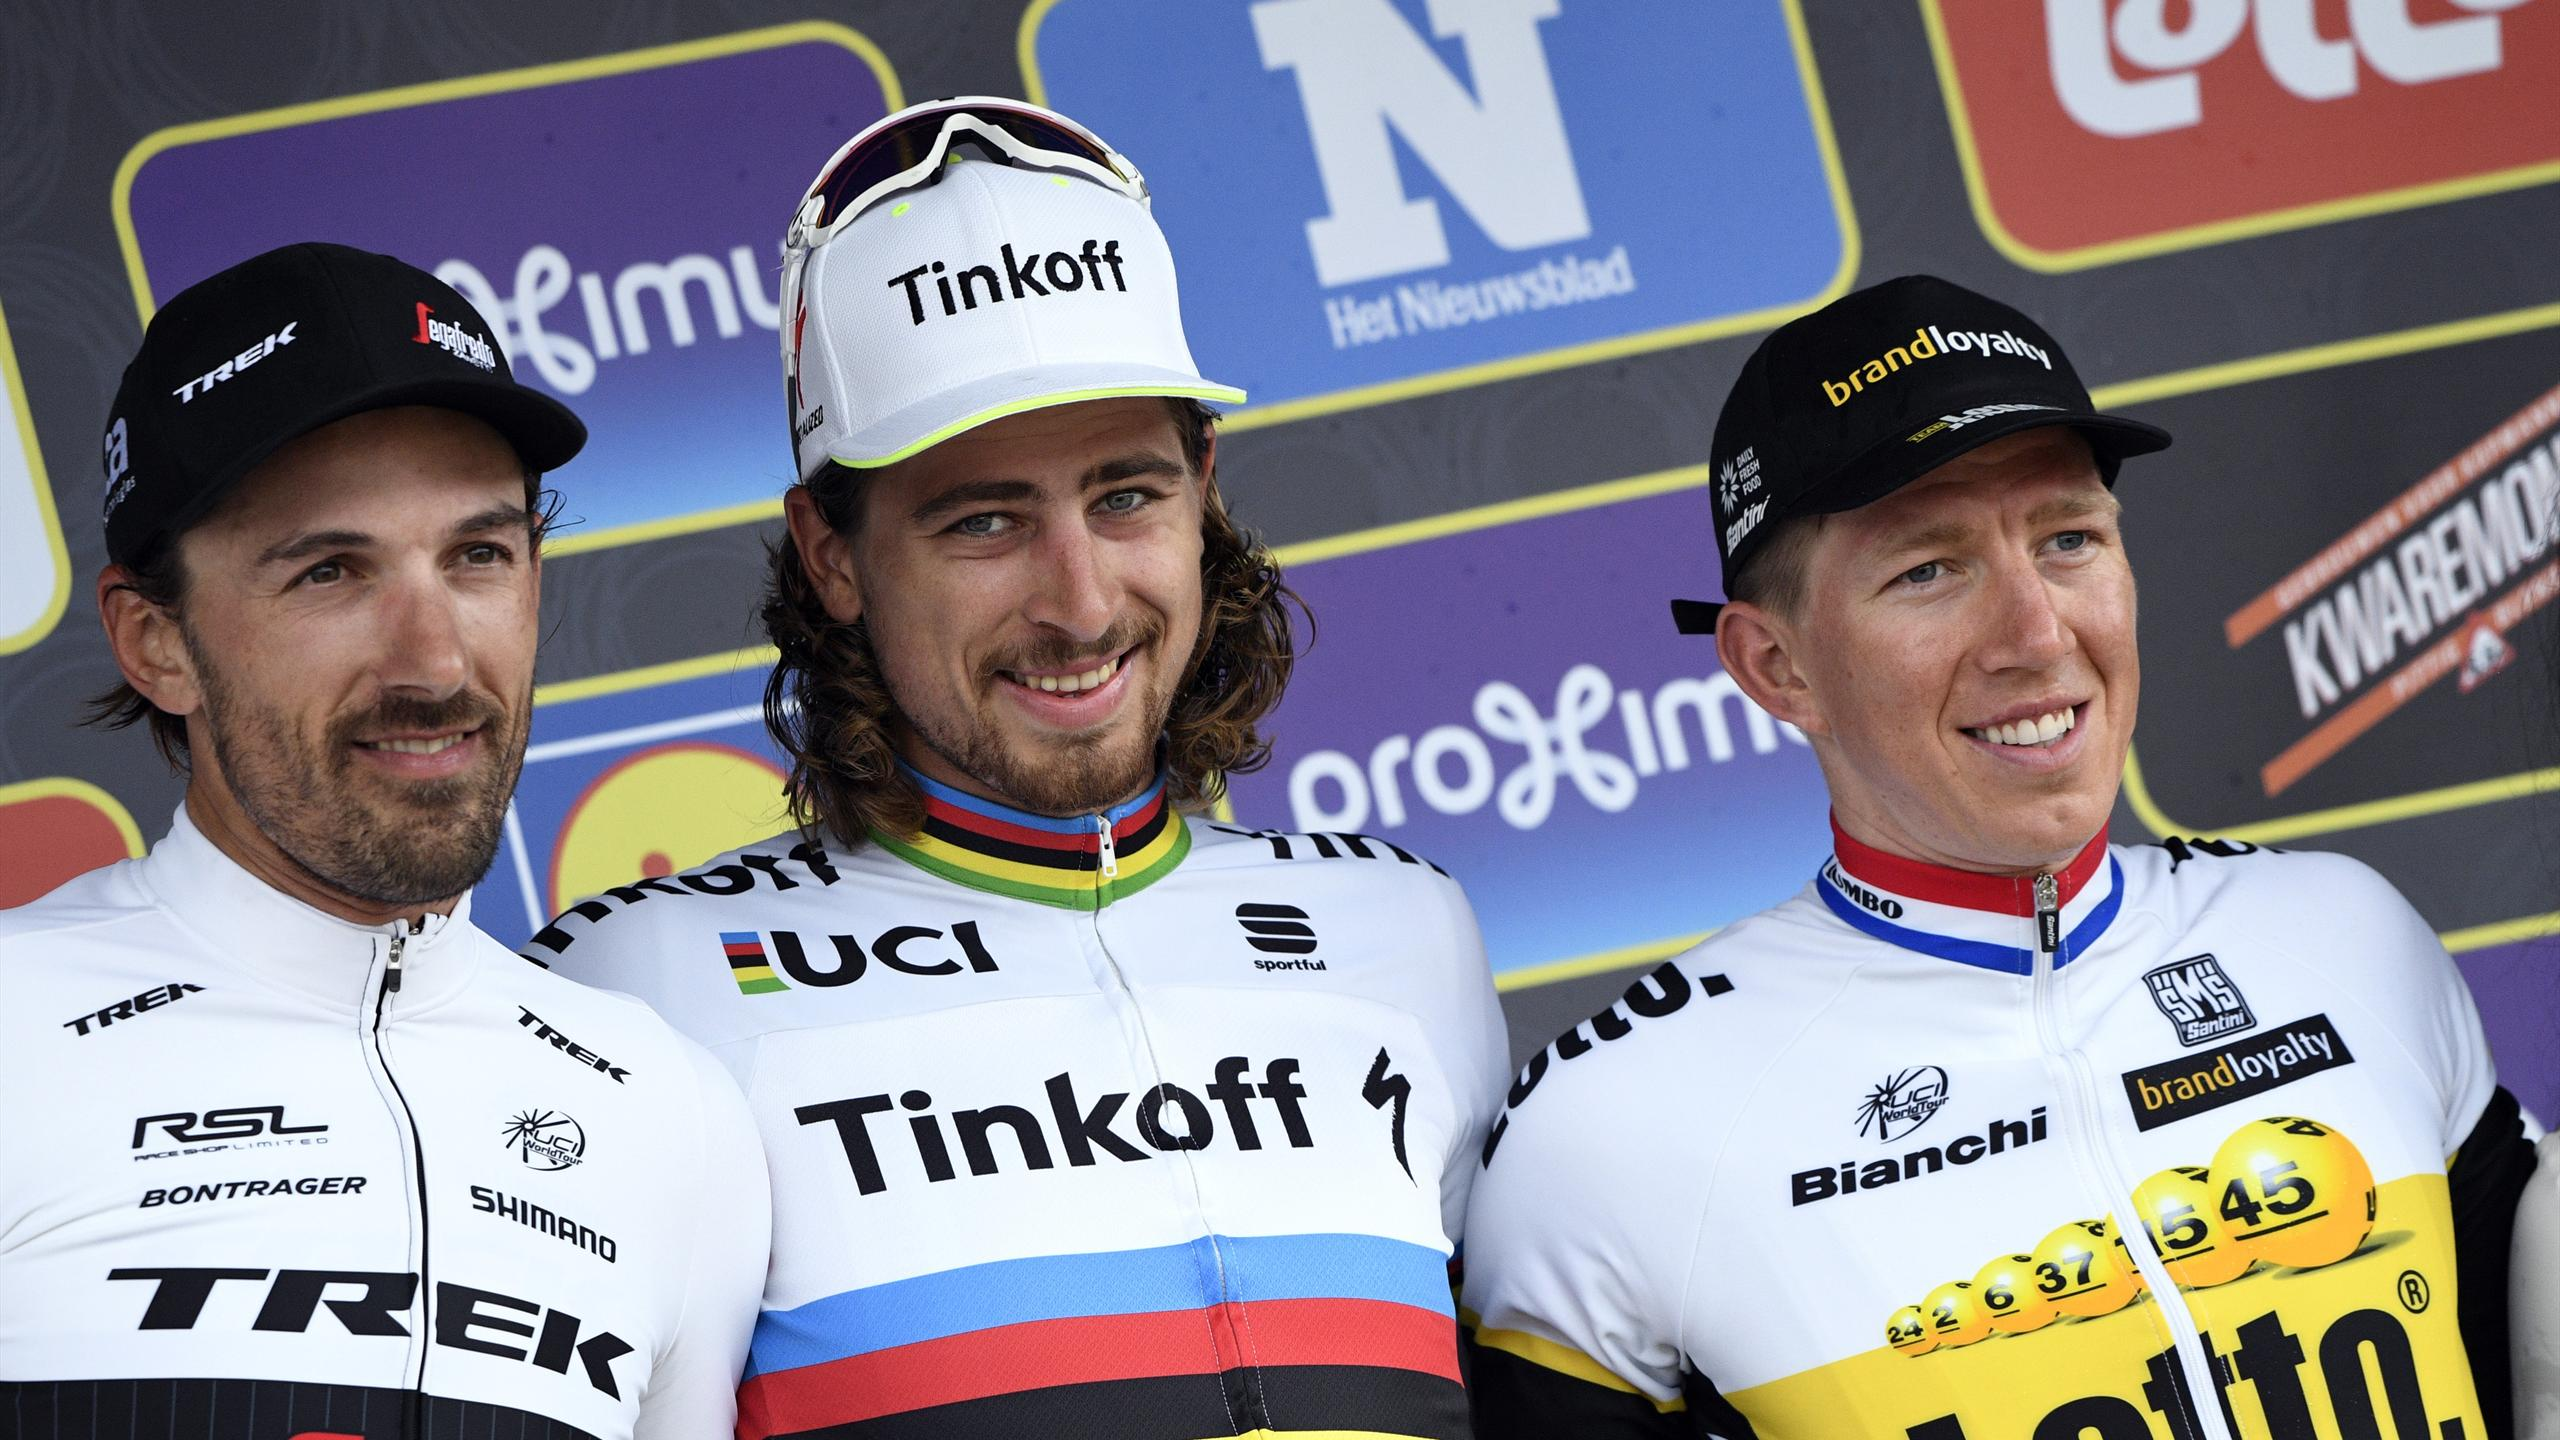 Peter Sagan sur le podium du Tour des Flandres